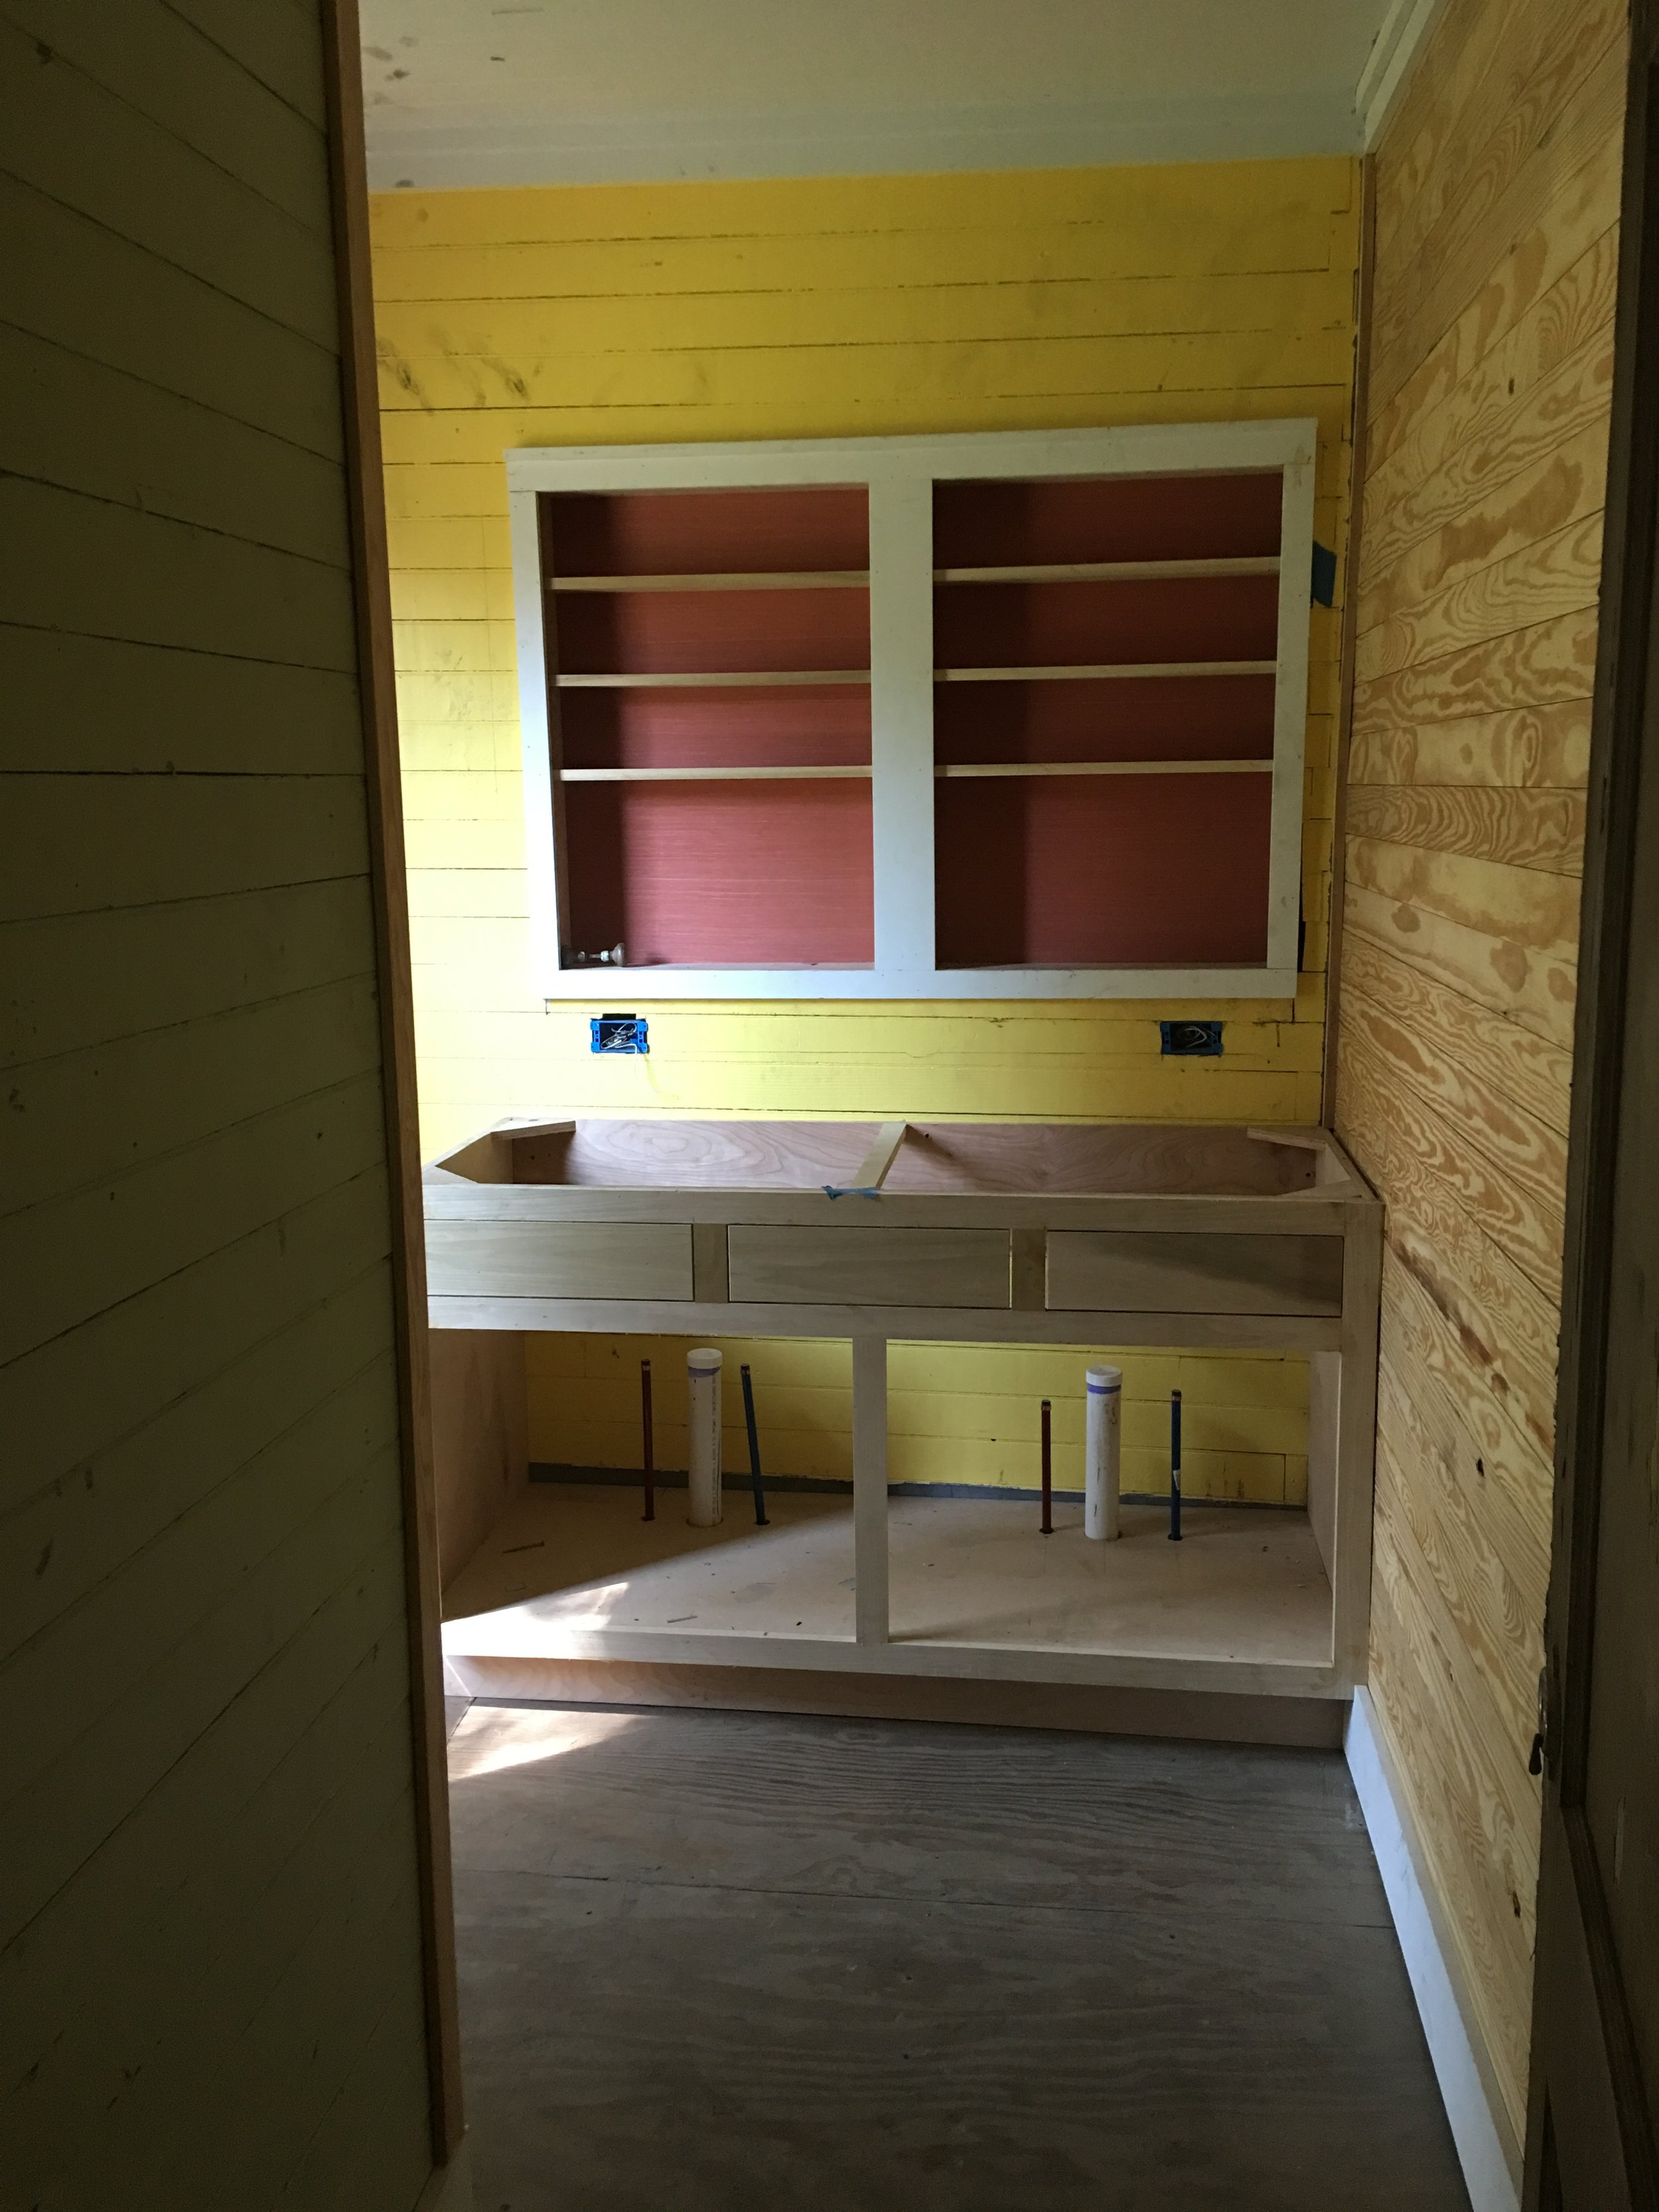 Shealy Master Vanity Med Cabinets IN Progess BEFORE.jpg